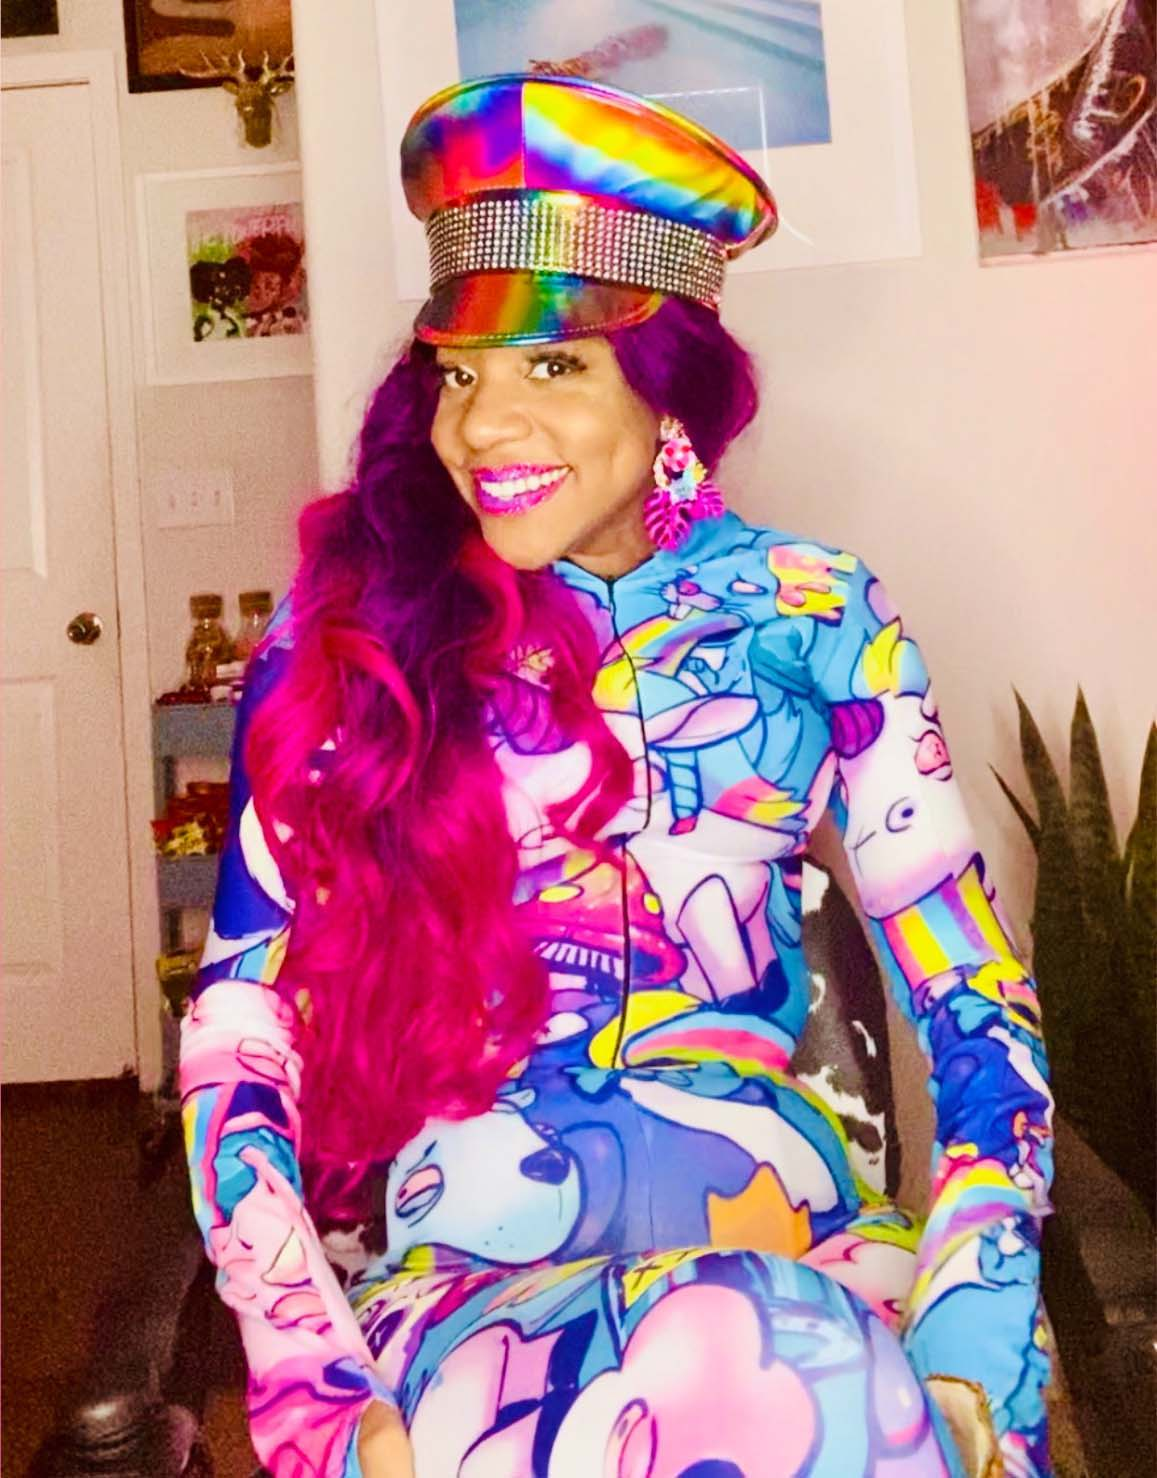 Krystina Jackson, Ms. Wheelchair CA 2018 and LGBTQ+ Advocate, smiles at the camera wearing a rainbow onesie.